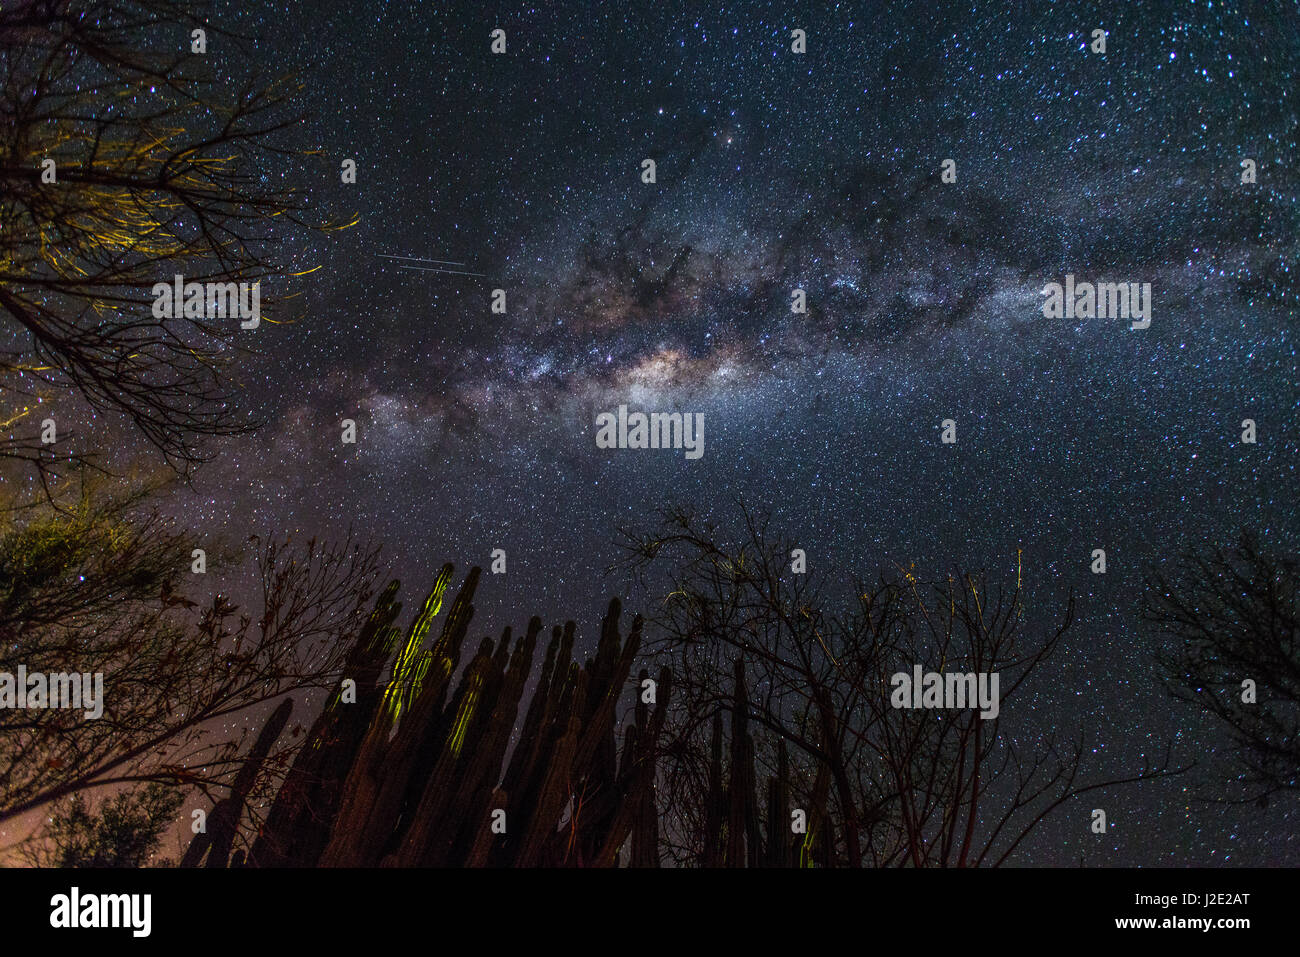 Bright Milky Way over cactus and shrubs in the Namibian desert - Stars, satellites in our galaxy - Stock Image